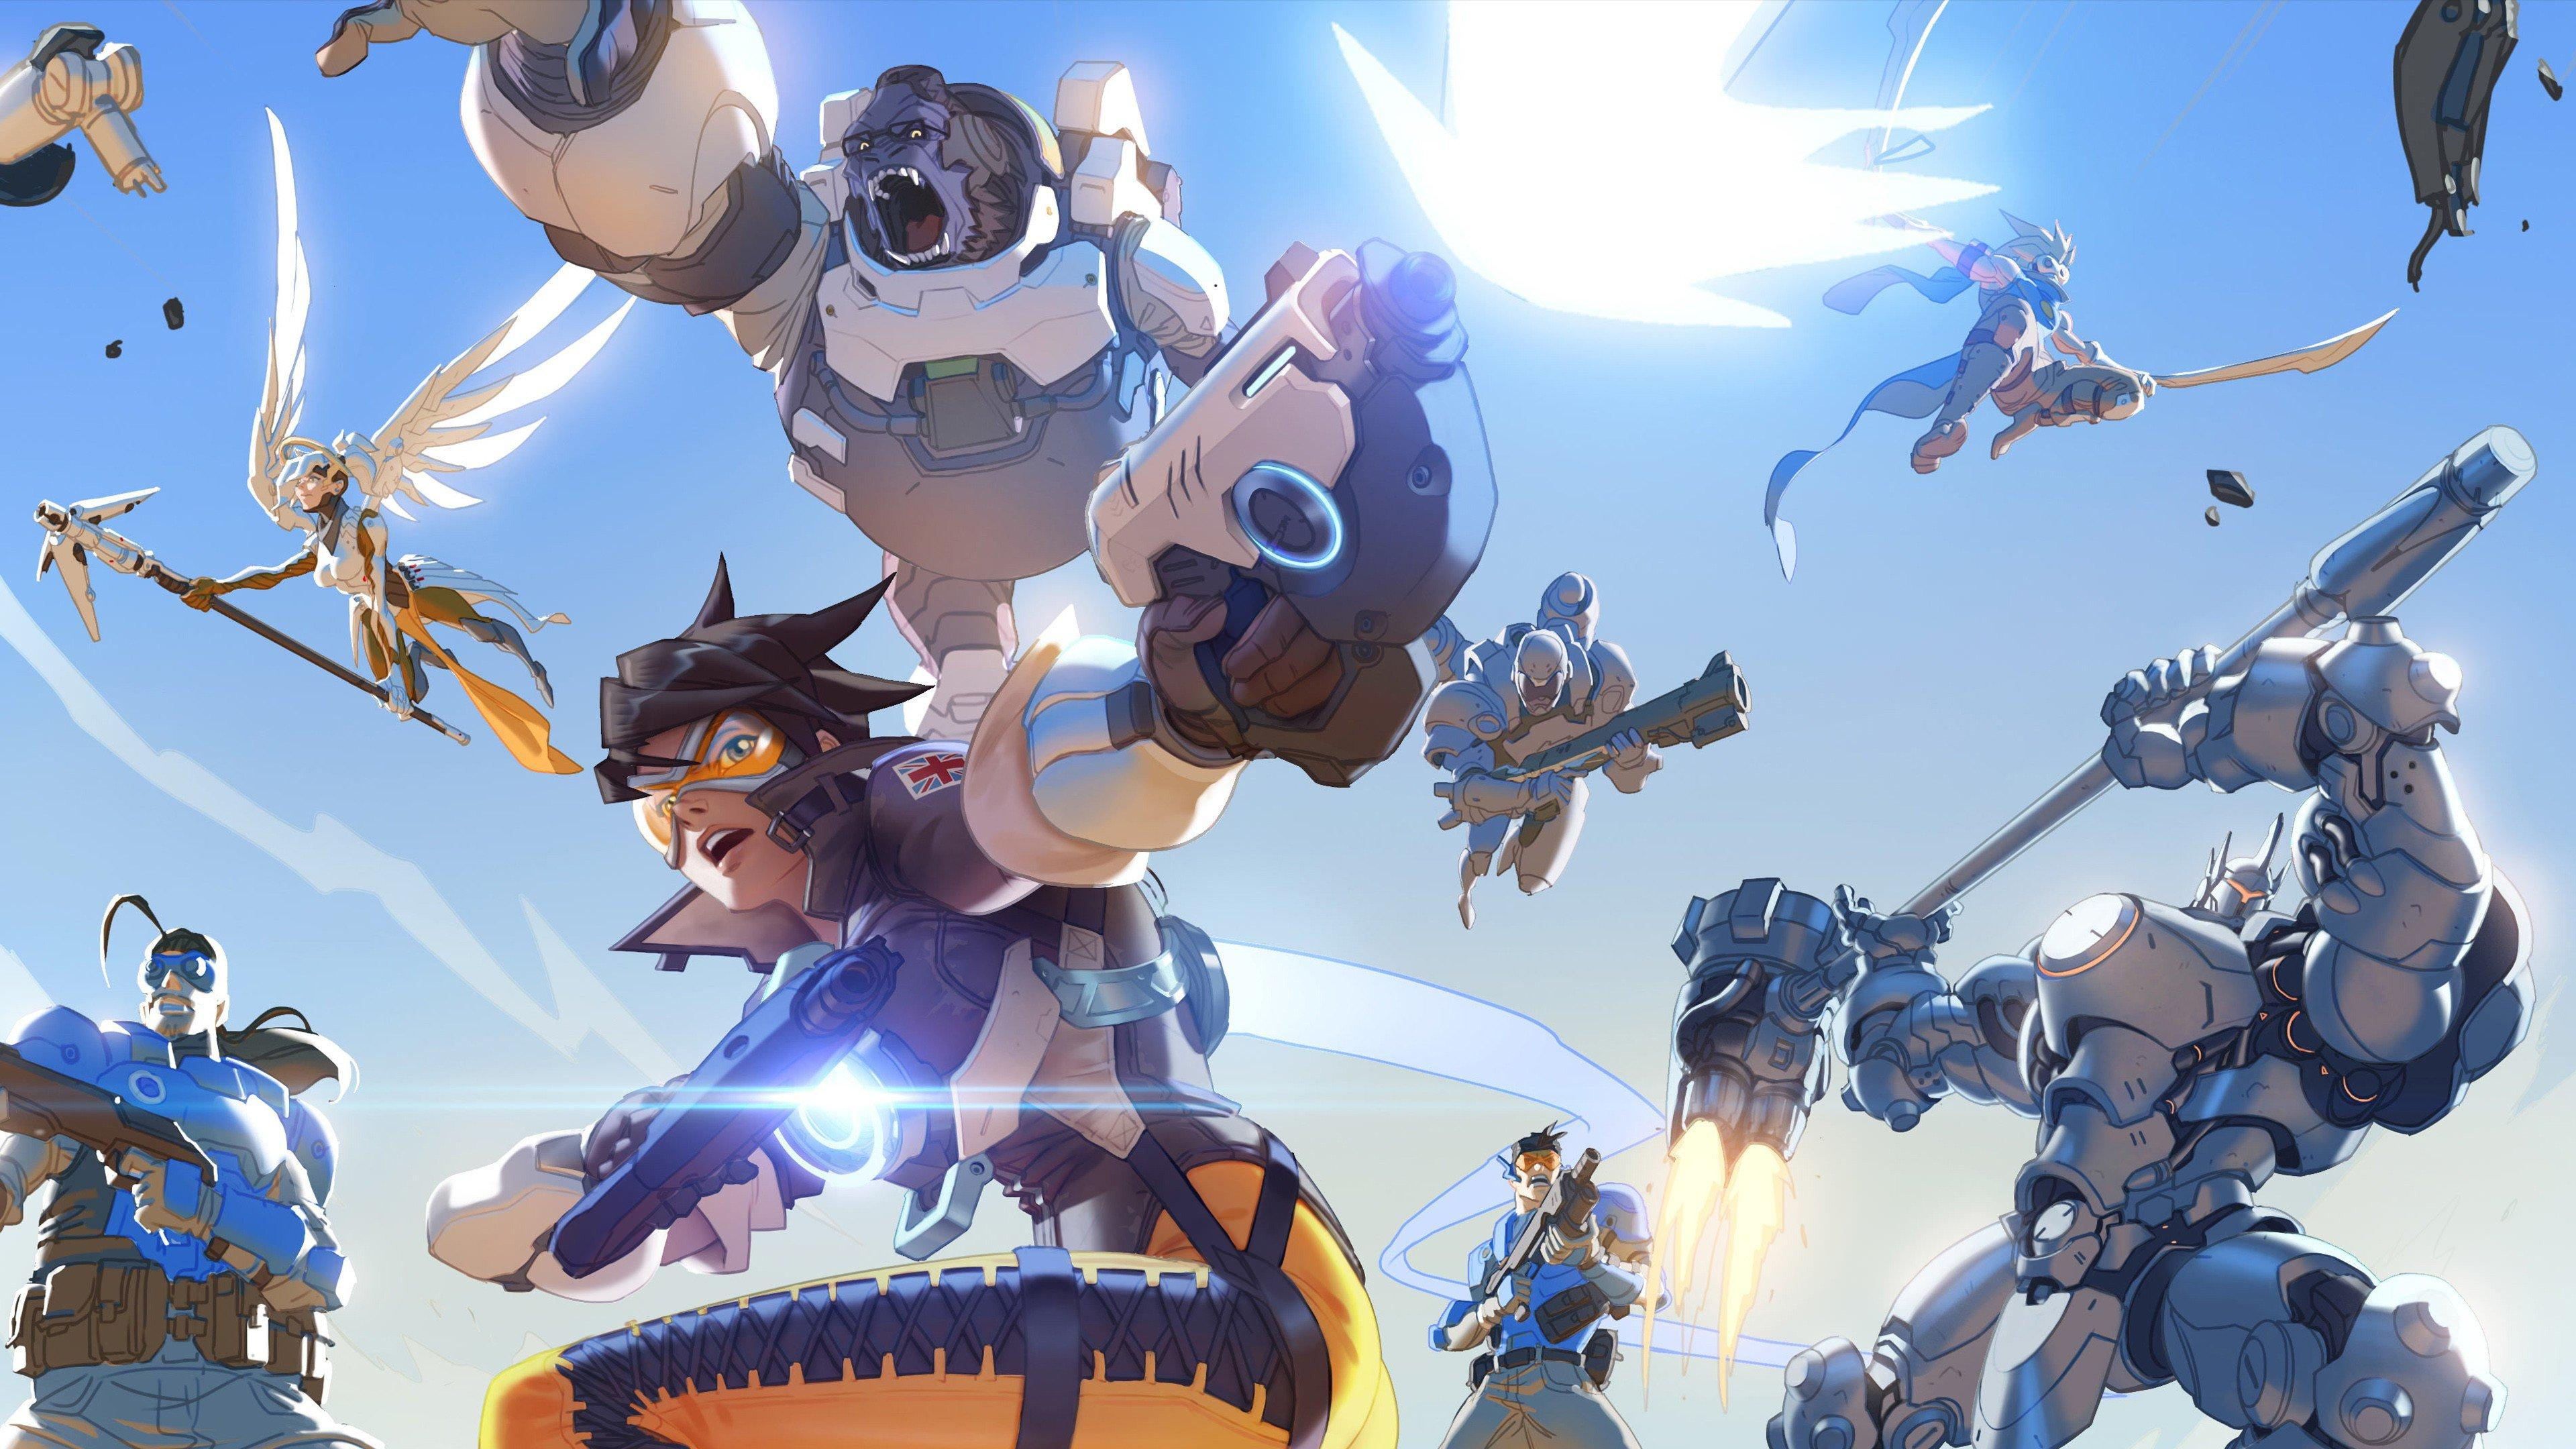 Overwatch Update Brings Deathmatch and Team Deathmatch to the Game